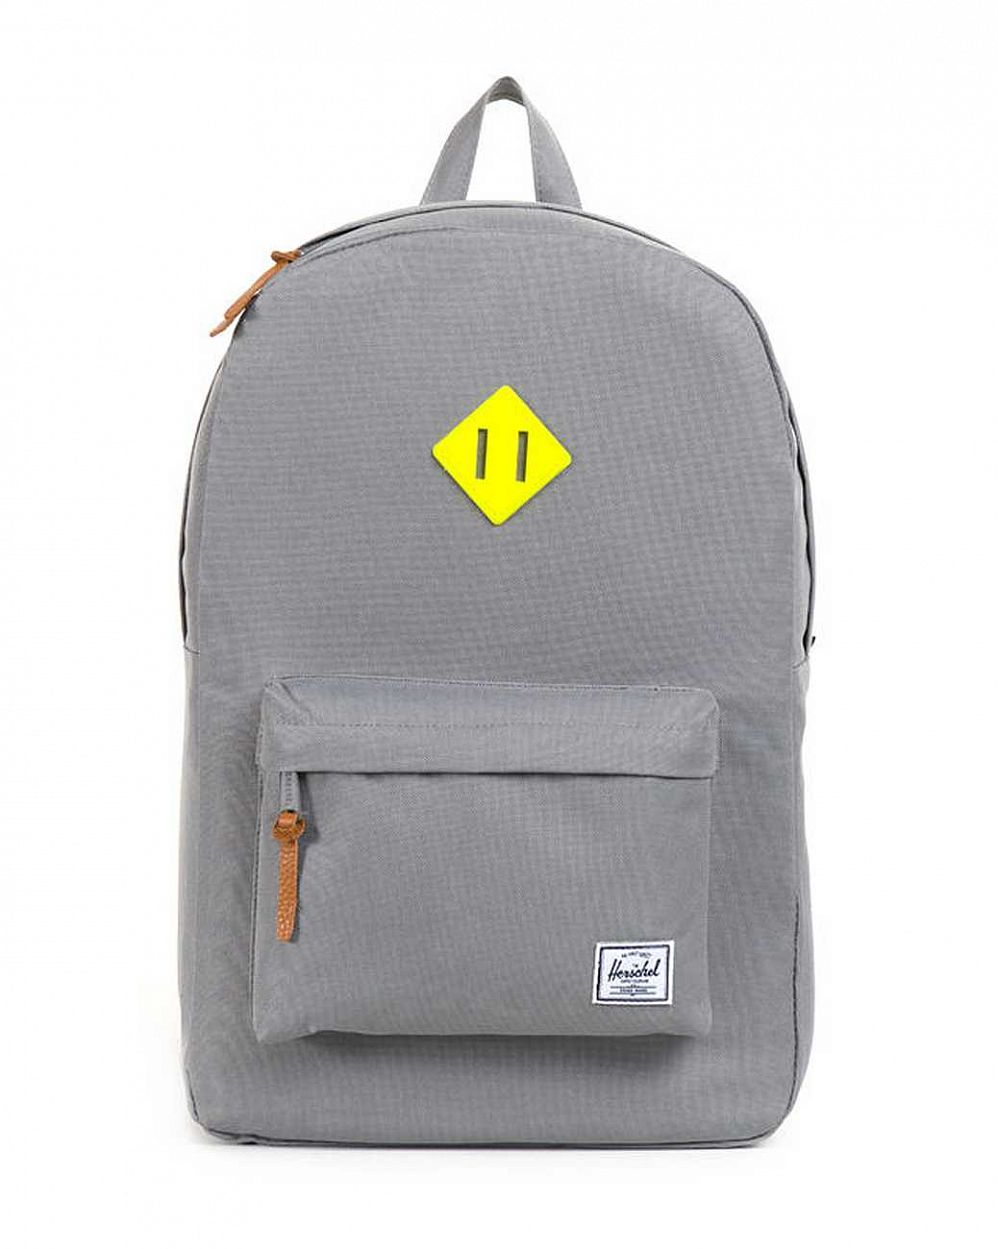 купить Рюкзак Herschel Heritage Grey Neon Yellow Rubber в Москве